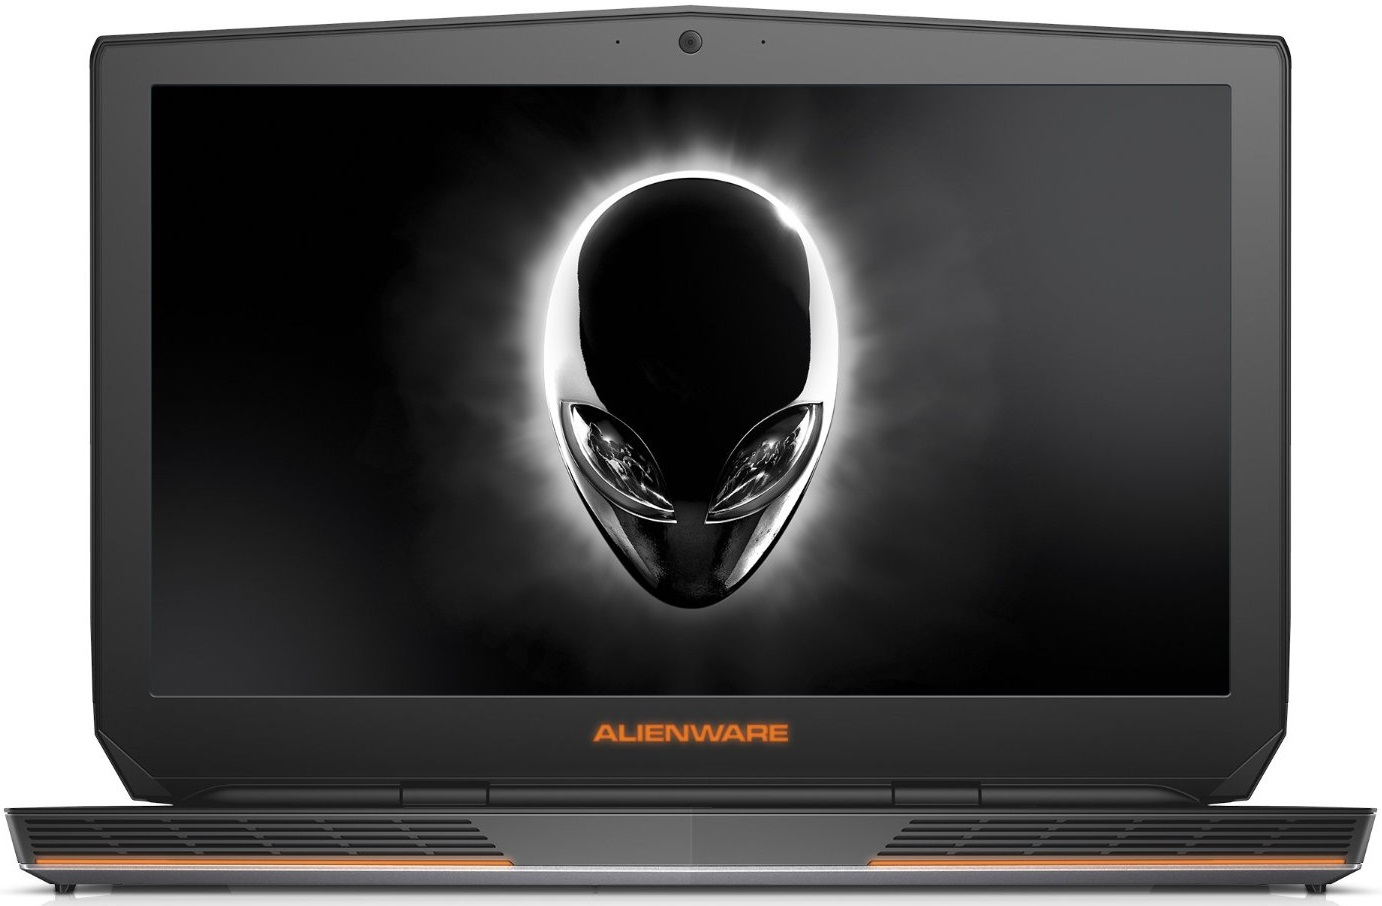 Best Alienware Laptop for Music Production and Recording